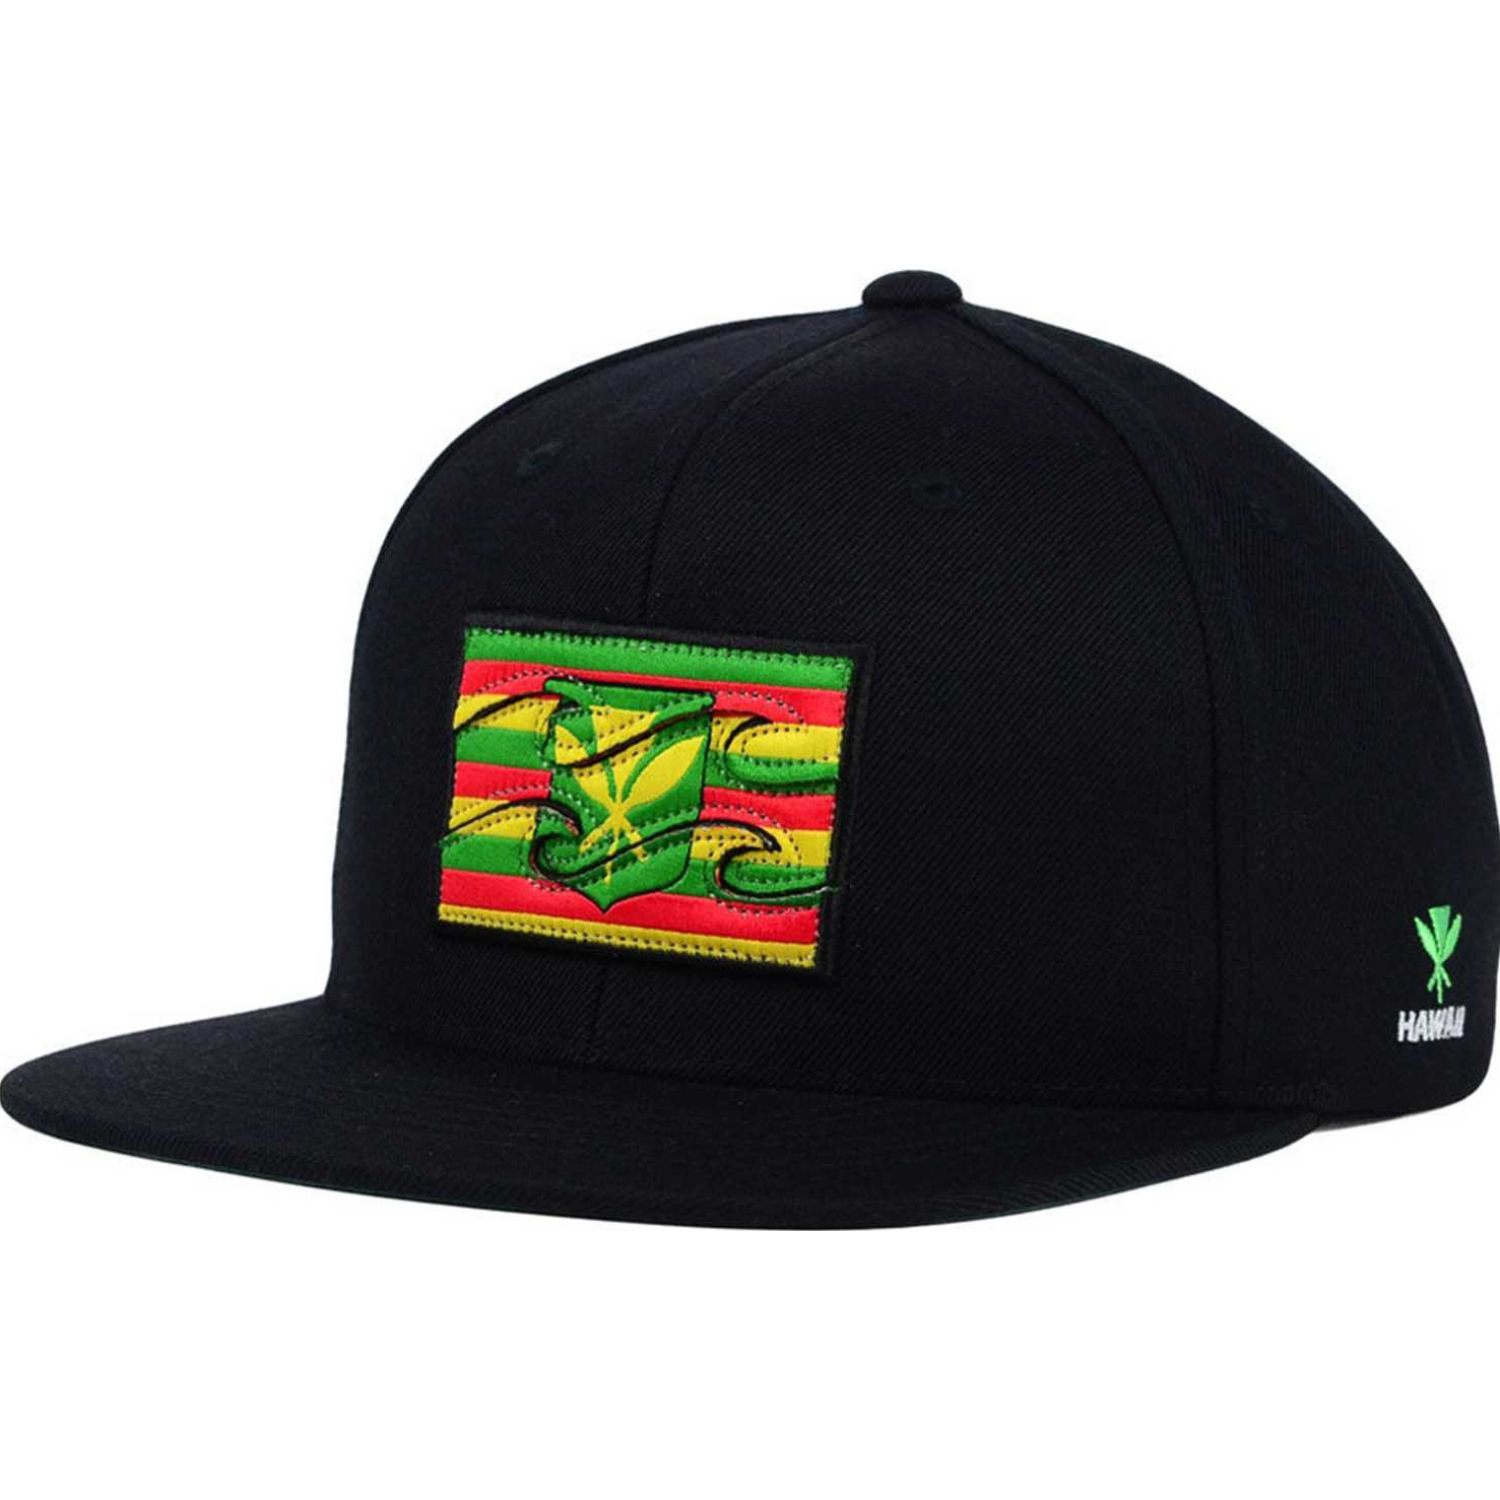 Billabong native Negro / verde Gorros de Baseball